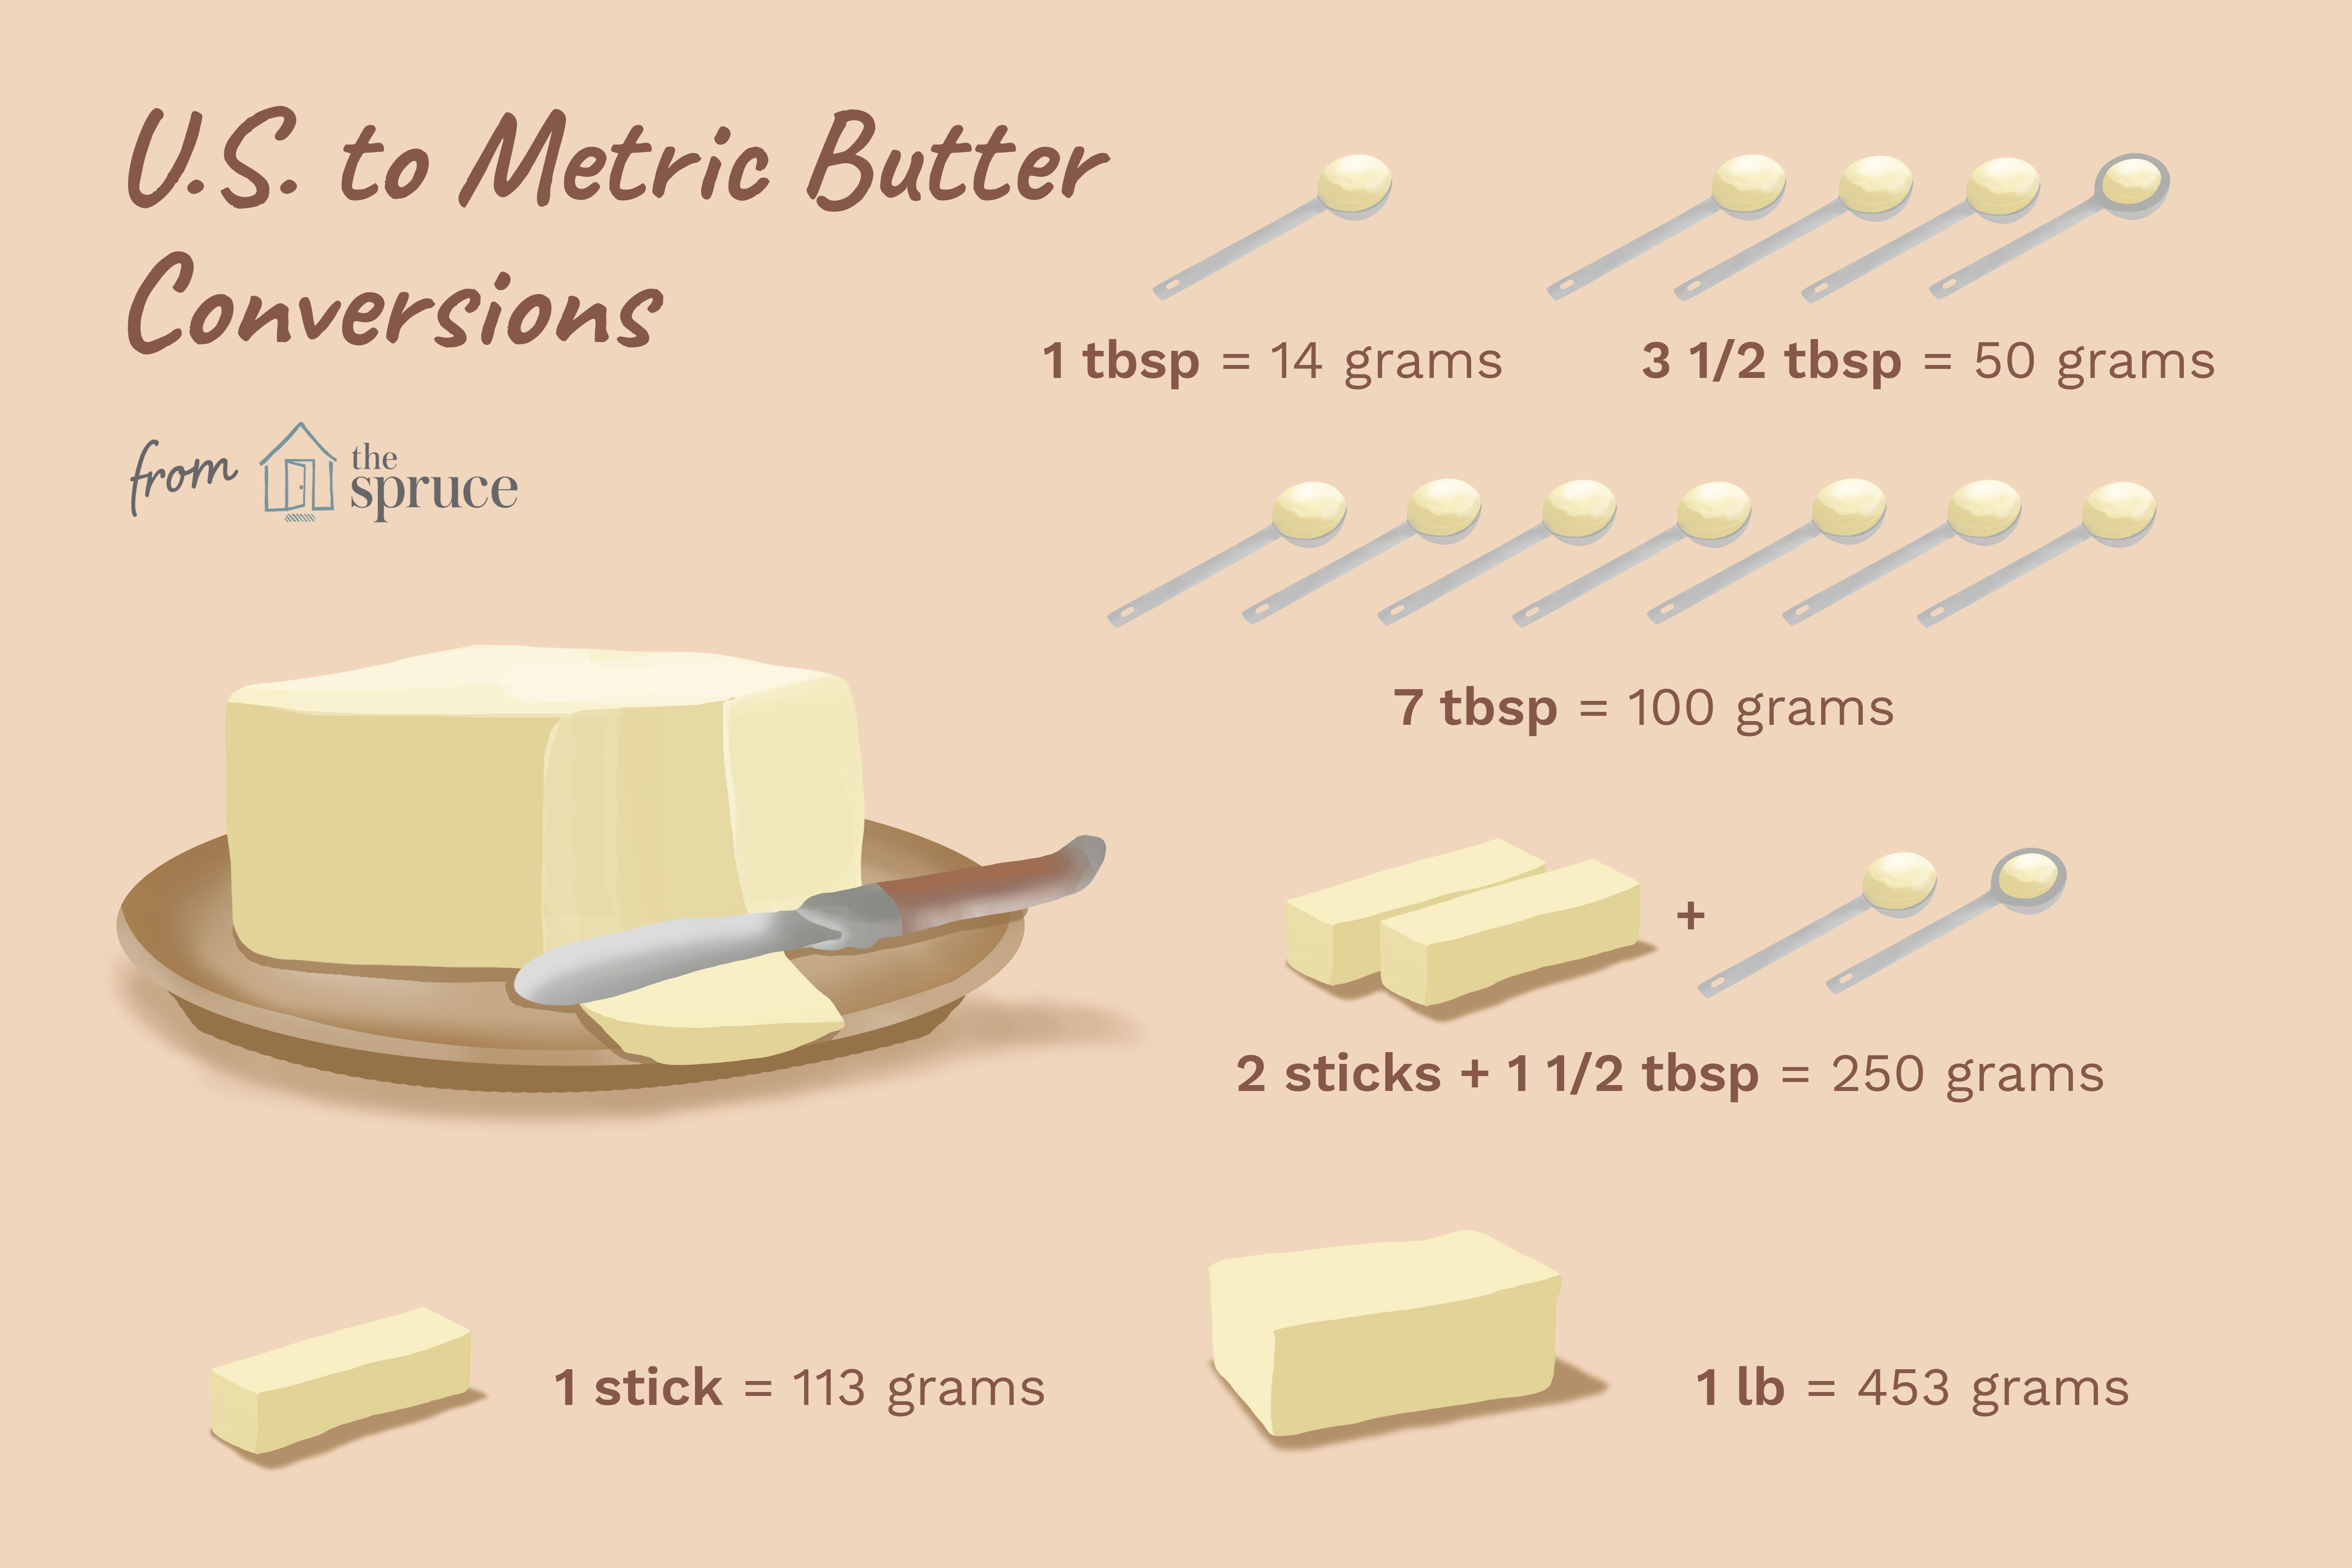 Australian Cup Measurement Converting Grams Of Butter To Us Tablespoons